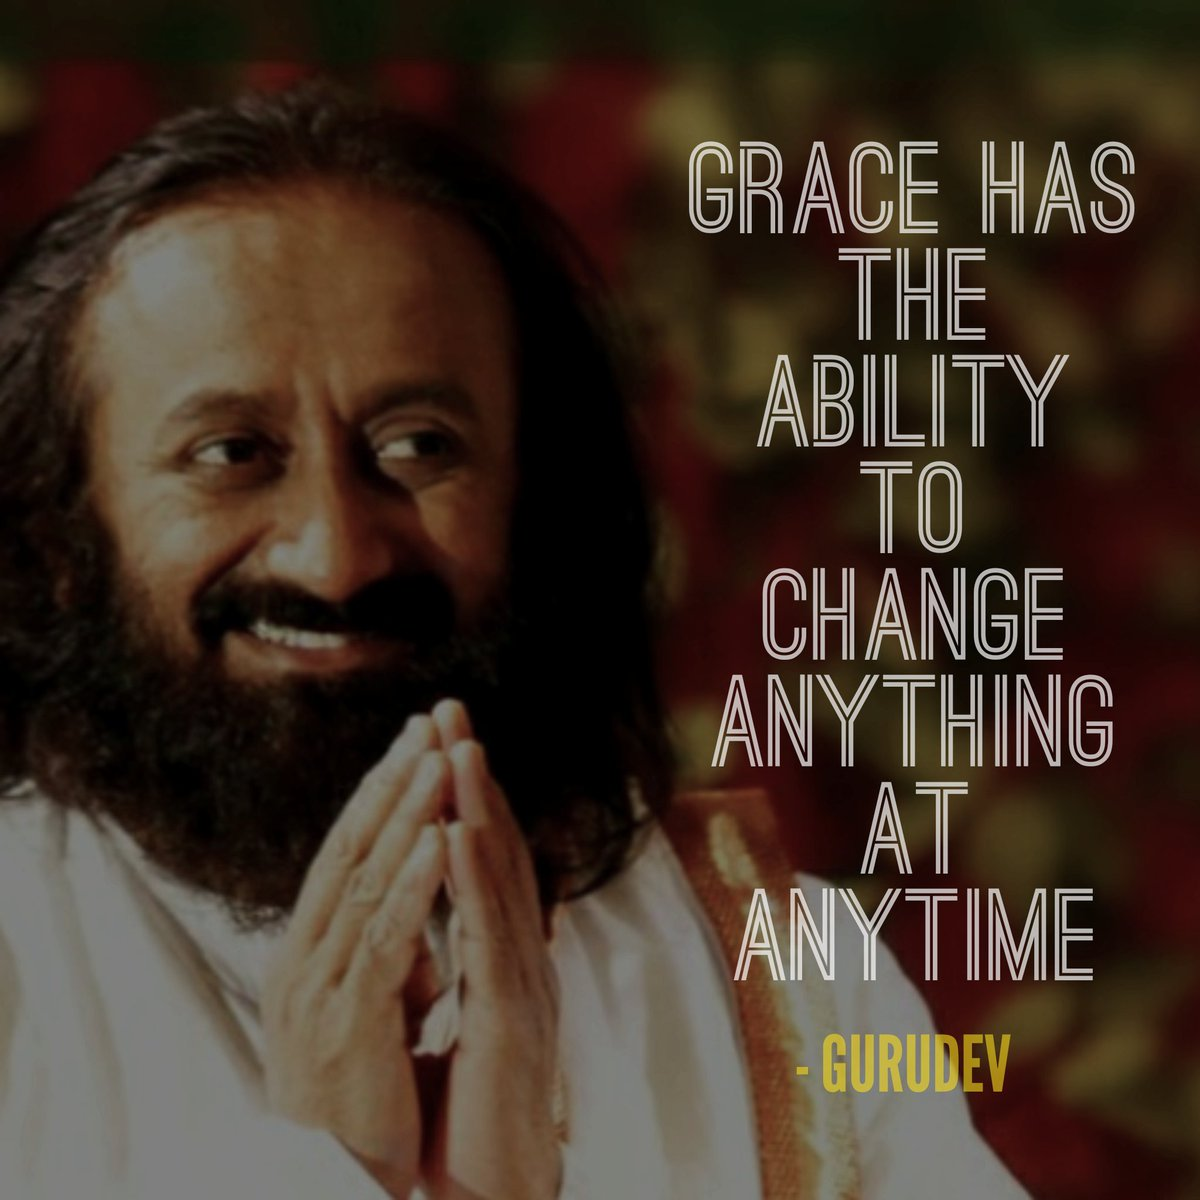 Grace has the ability to change anything at anytime. - Sri Sri Ravi Shankar